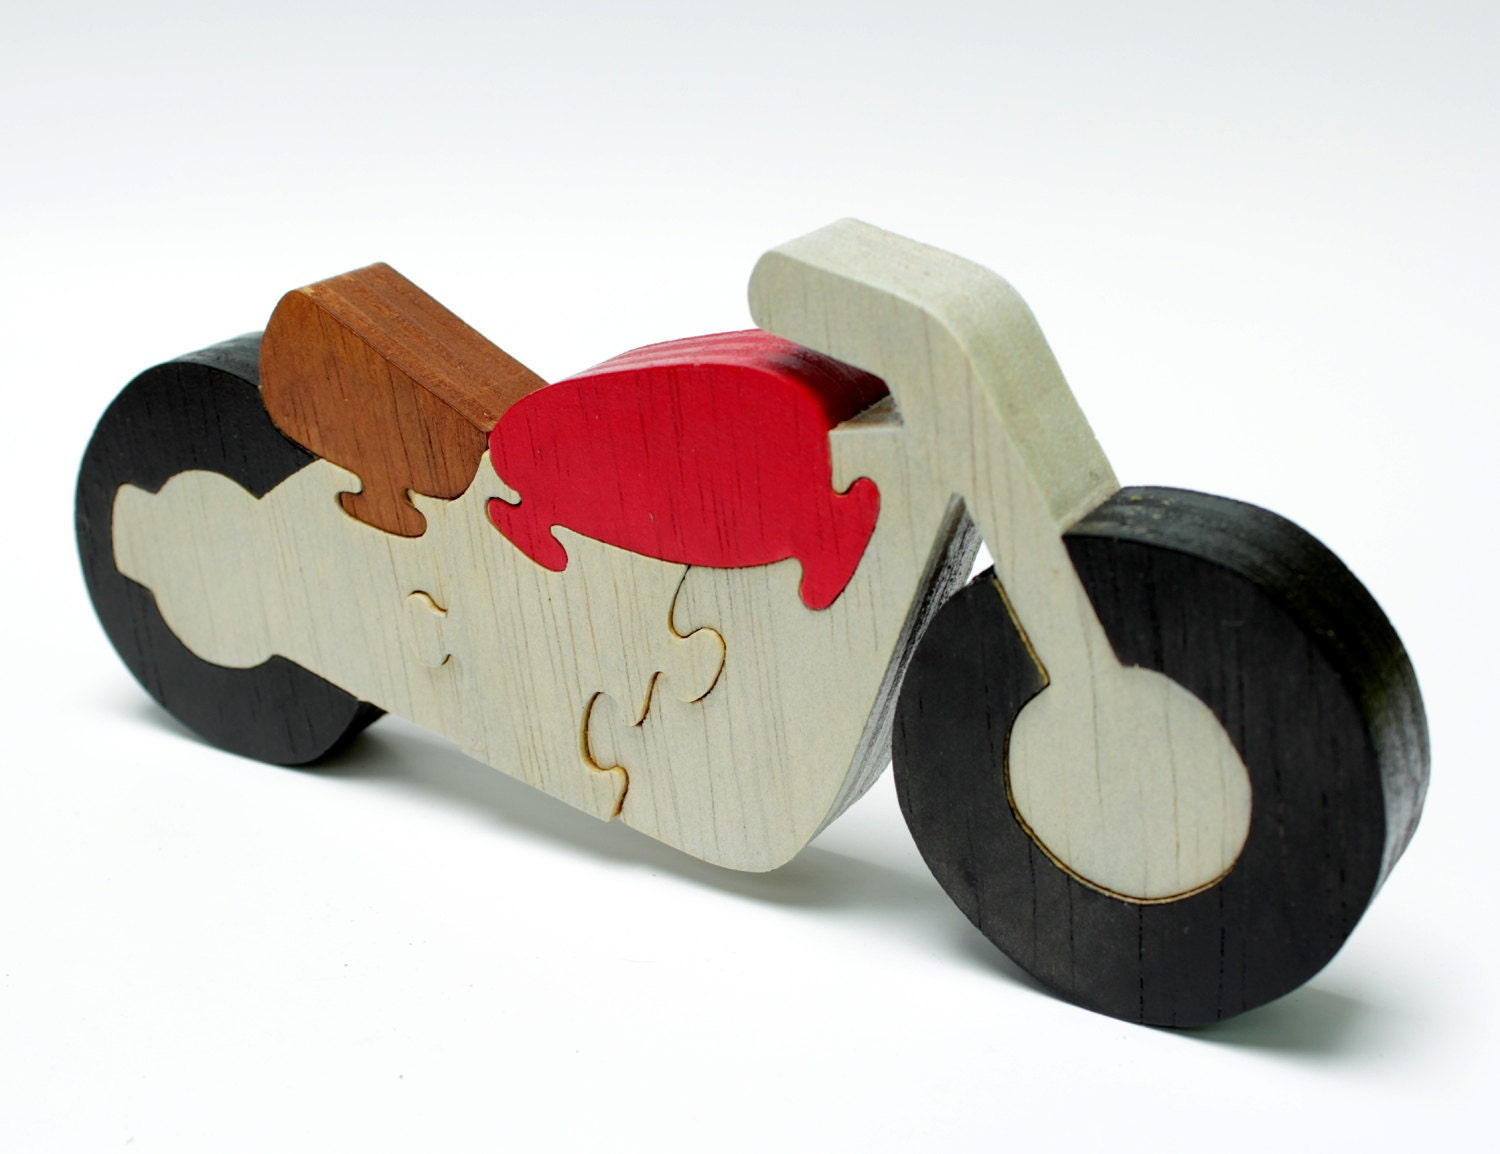 Puzzle Motorcycle. Kids puzzle, children's puzzle, wooden game, wood toy.